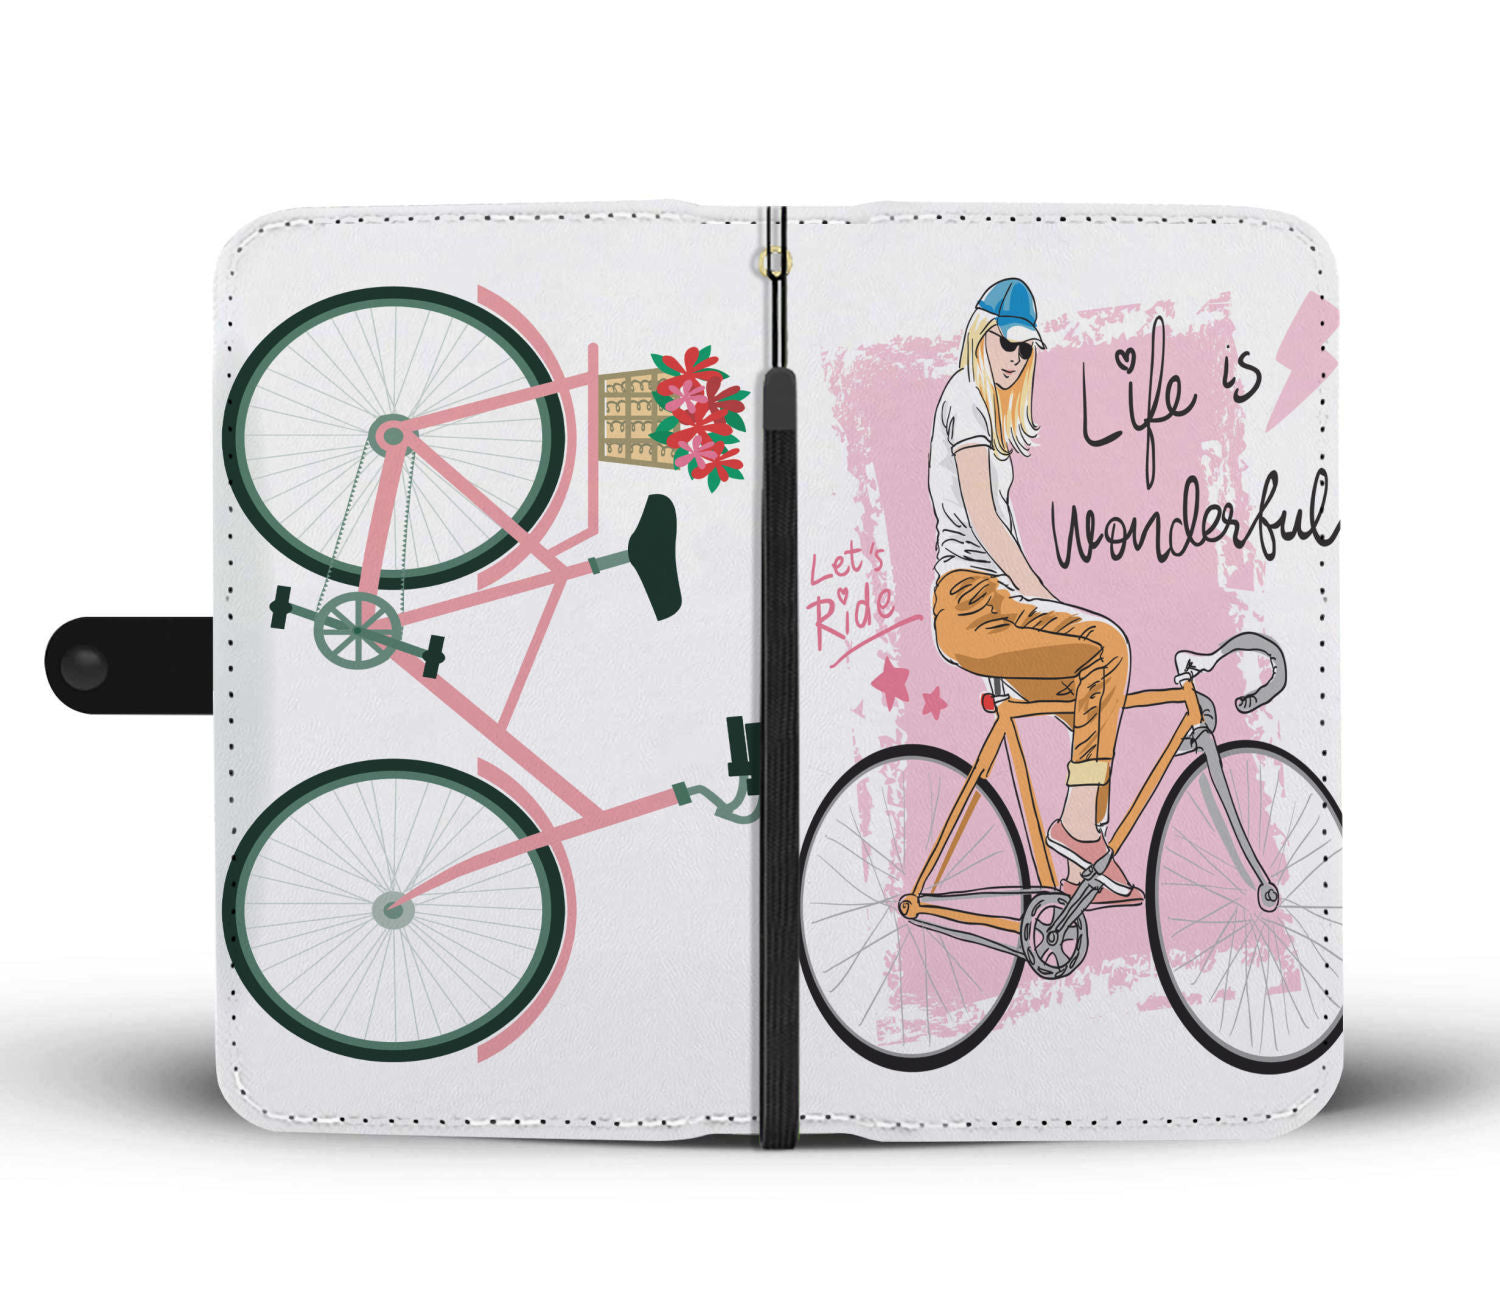 Let's Ride - phone-cases.ie - Ireland